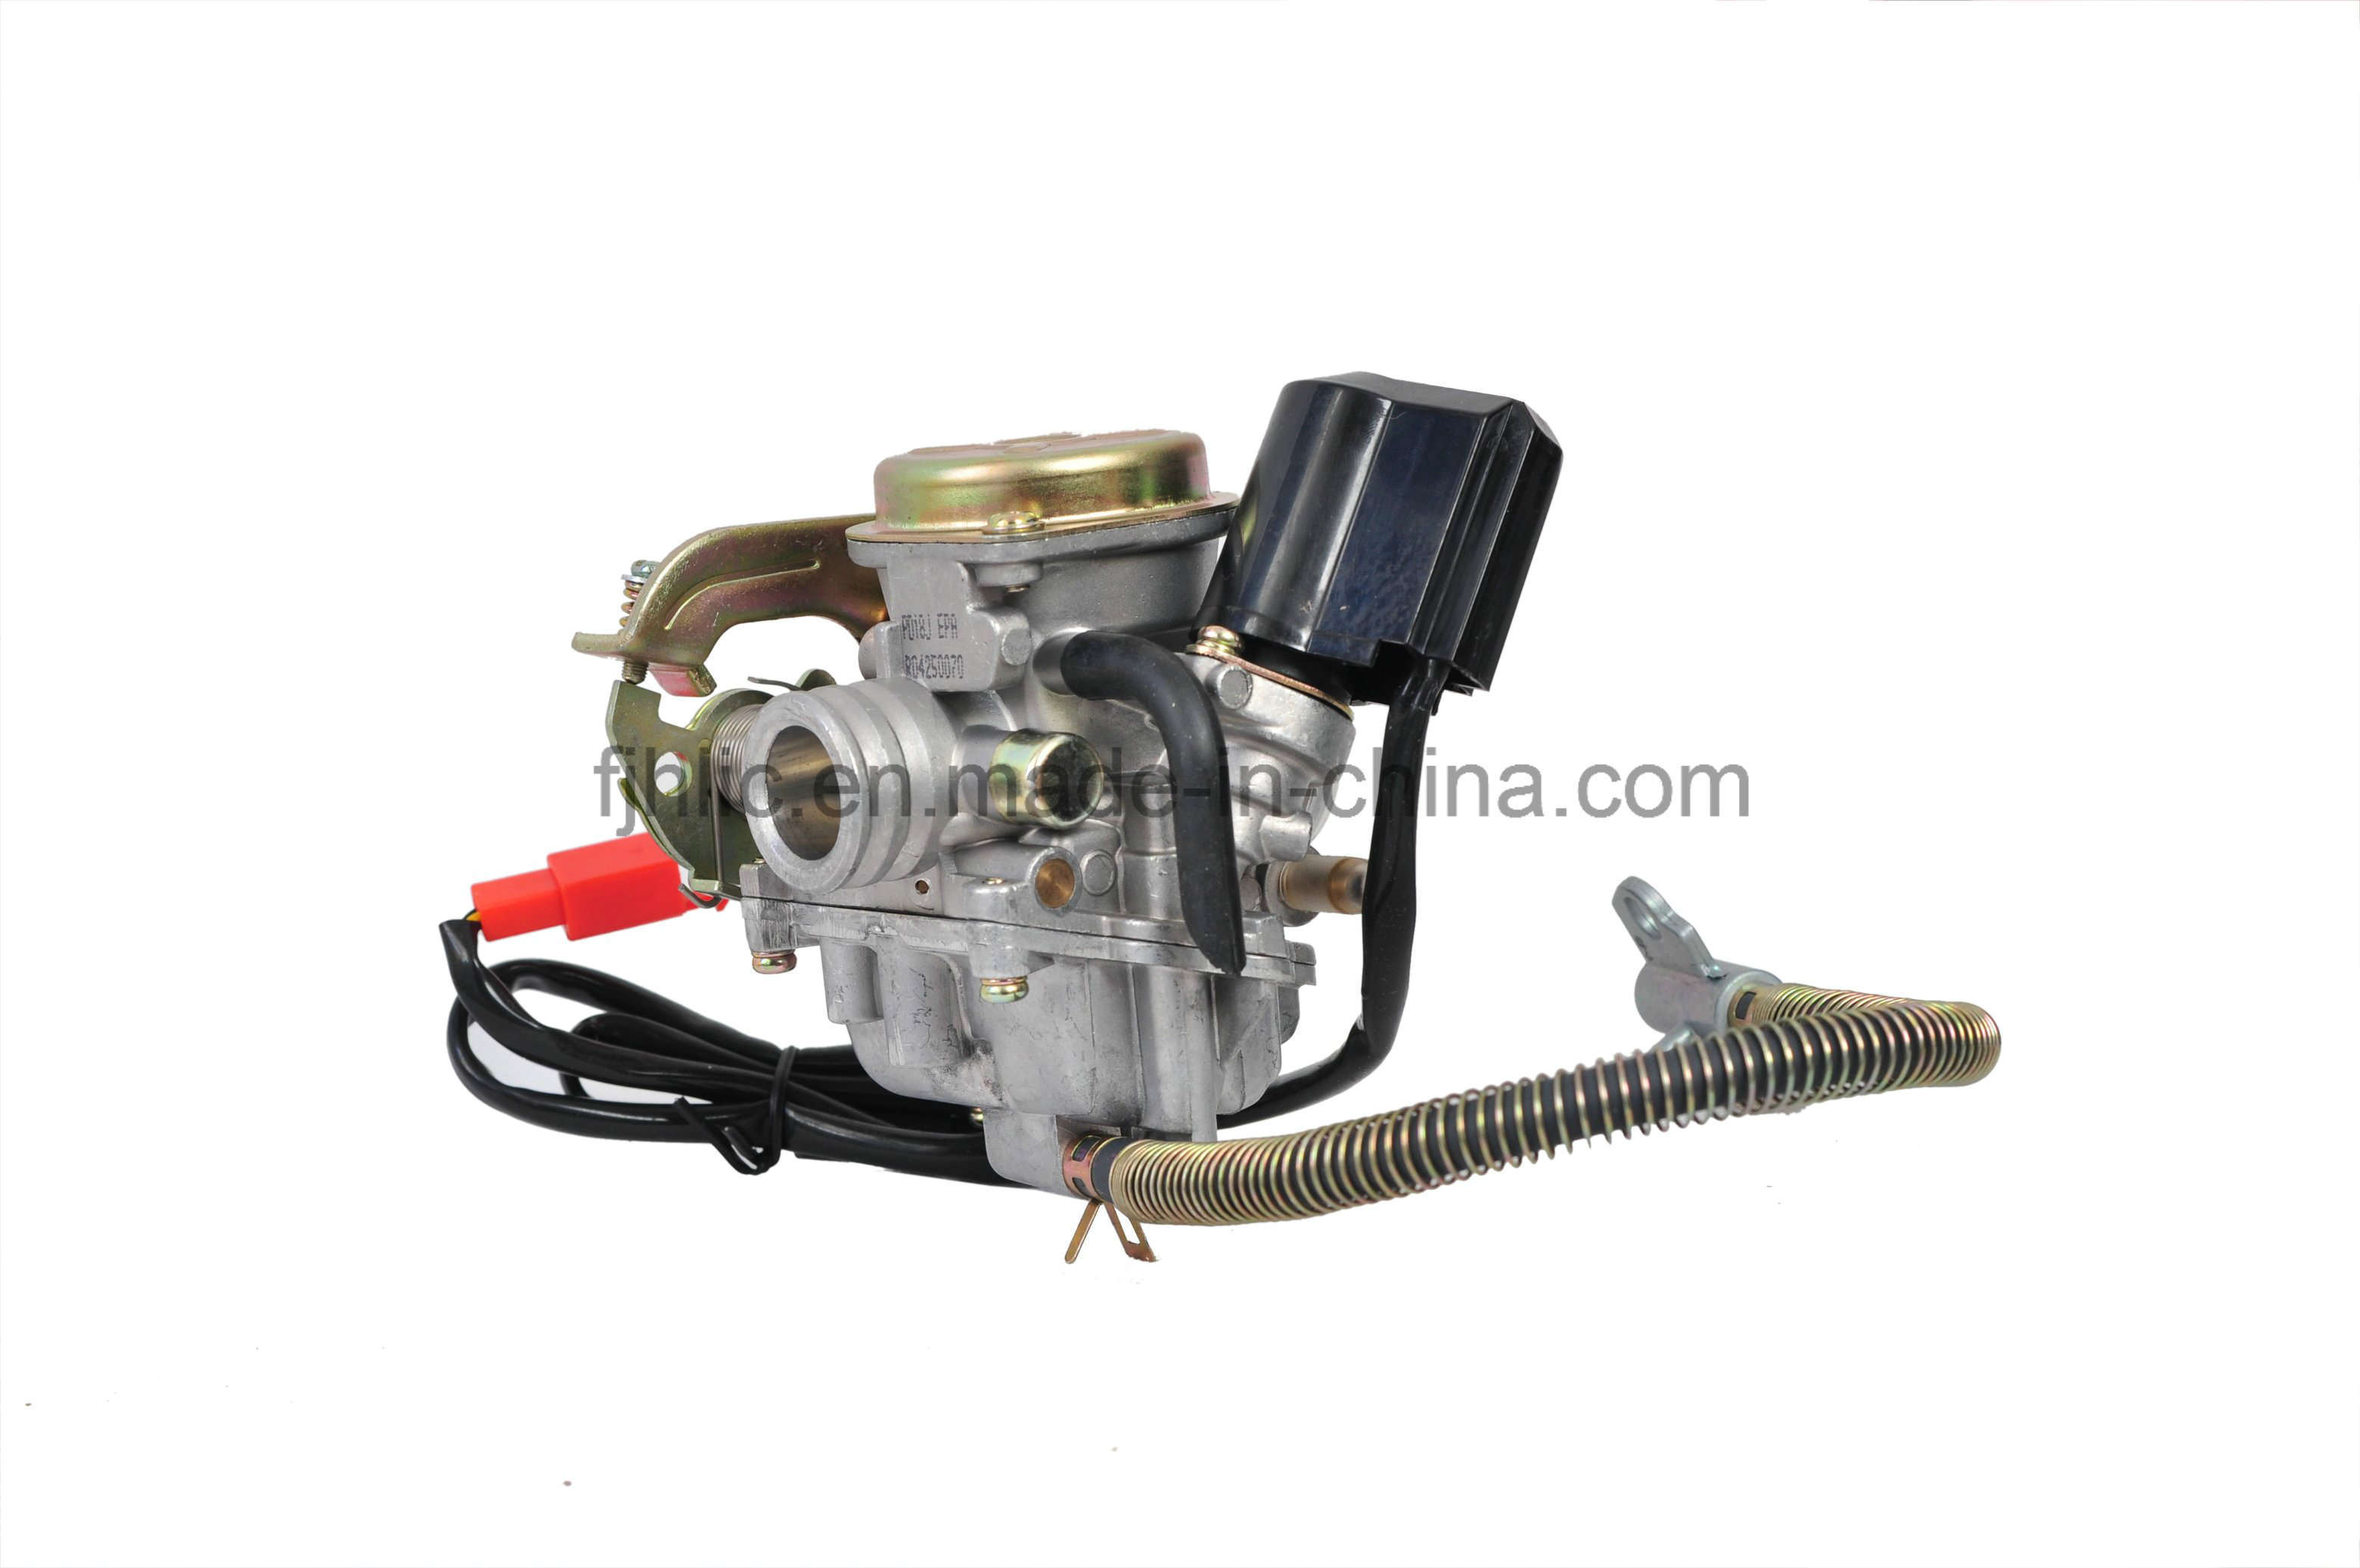 China Scooter Engine Carburetor, Scooter Engine Carburetor Manufacturers,  Suppliers, Price | Made-in-China com